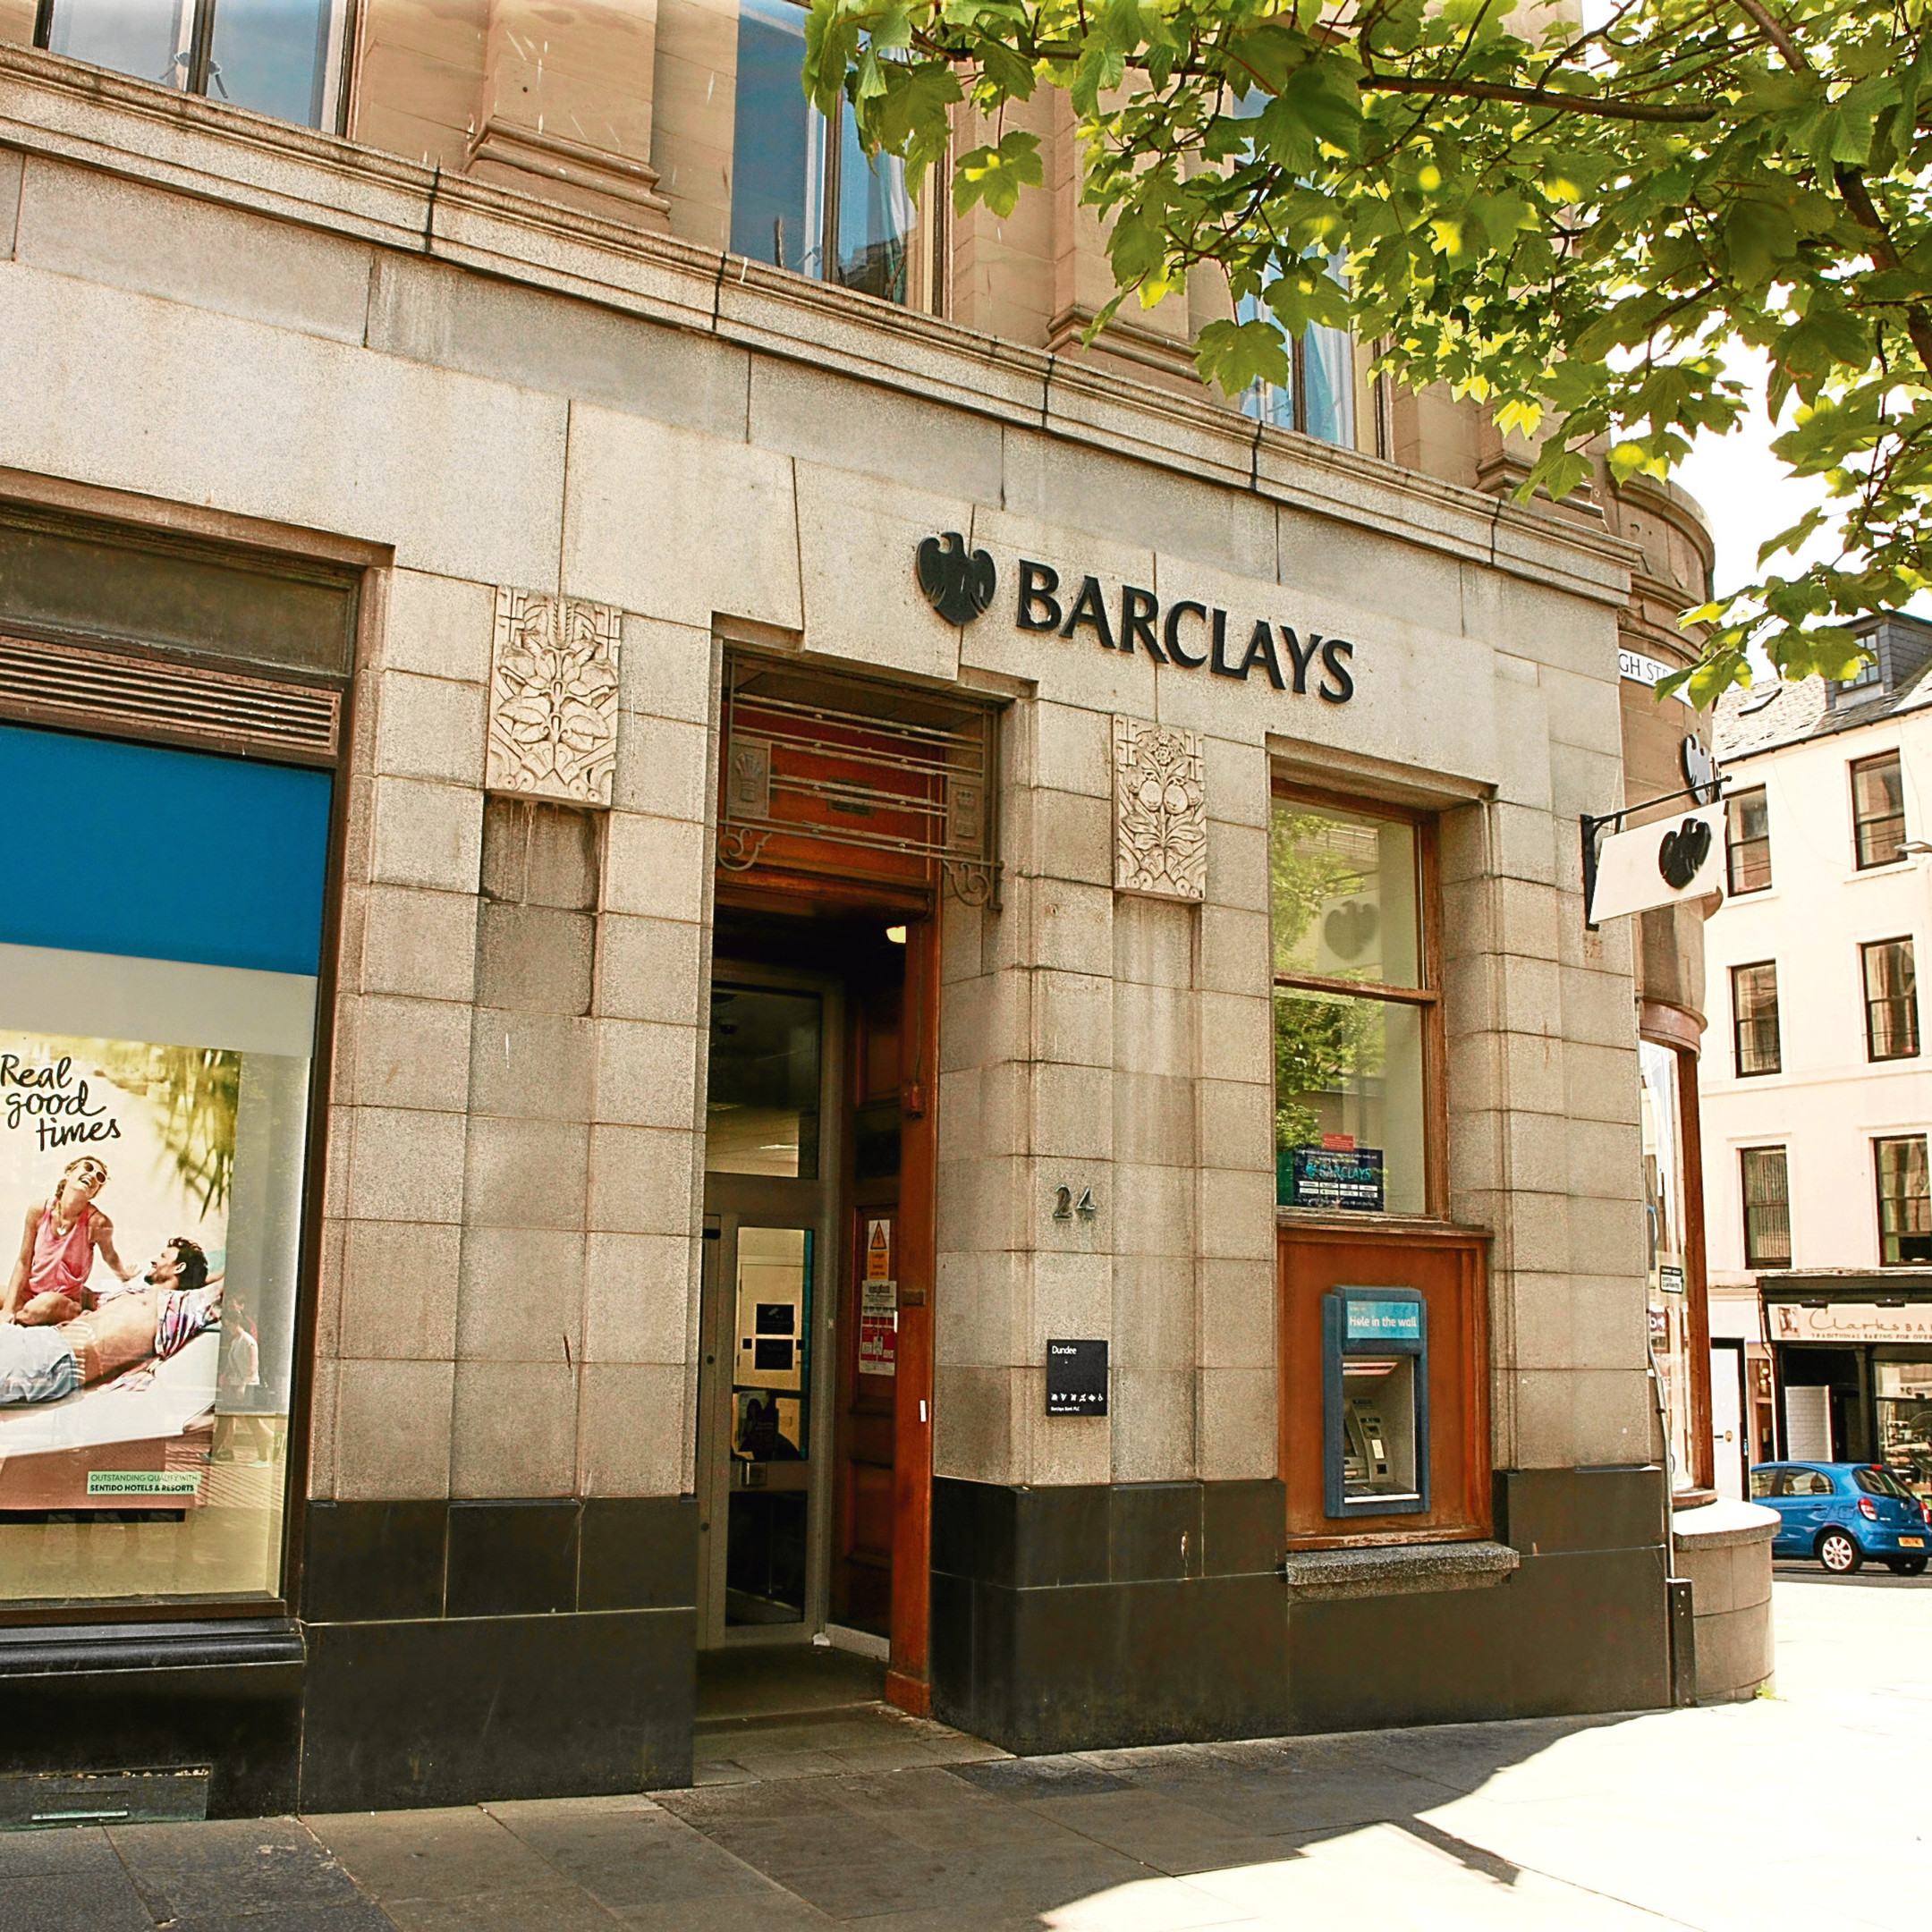 Barclays bank in Dundee city centre